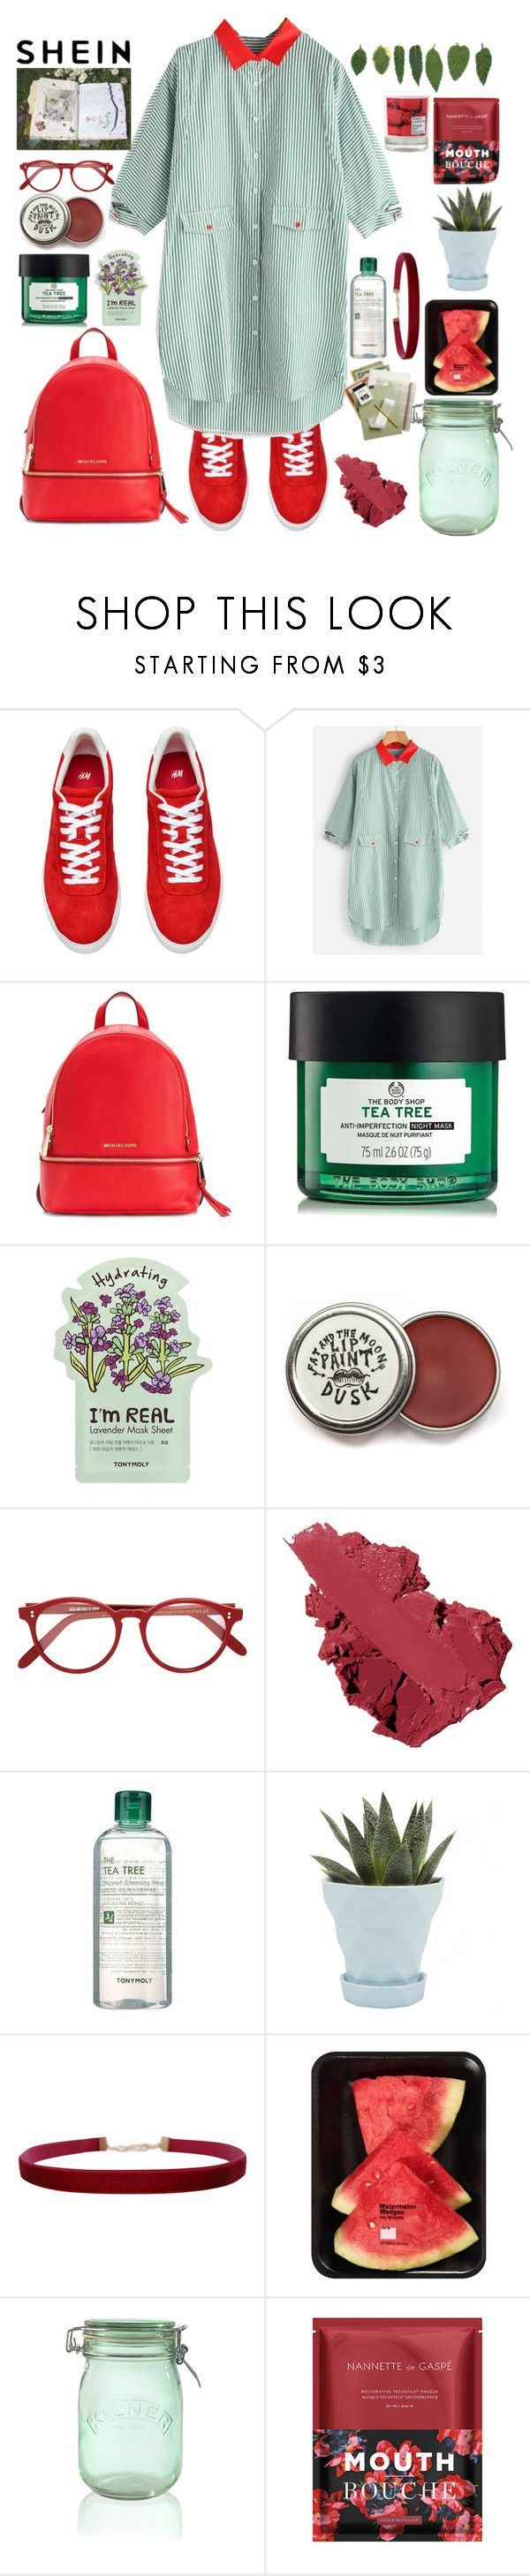 """""""Fight Like a Girl - Zolita"""" by xconstancax ❤ liked on Polyvore featuring Michael Kors, TONYMOLY, Cutler and Gross, Bobbi Brown Cosmetics, Tony Moly, Chive, Humble Chic, Kilner, Nannette de Gaspé and Maison La Bougie"""